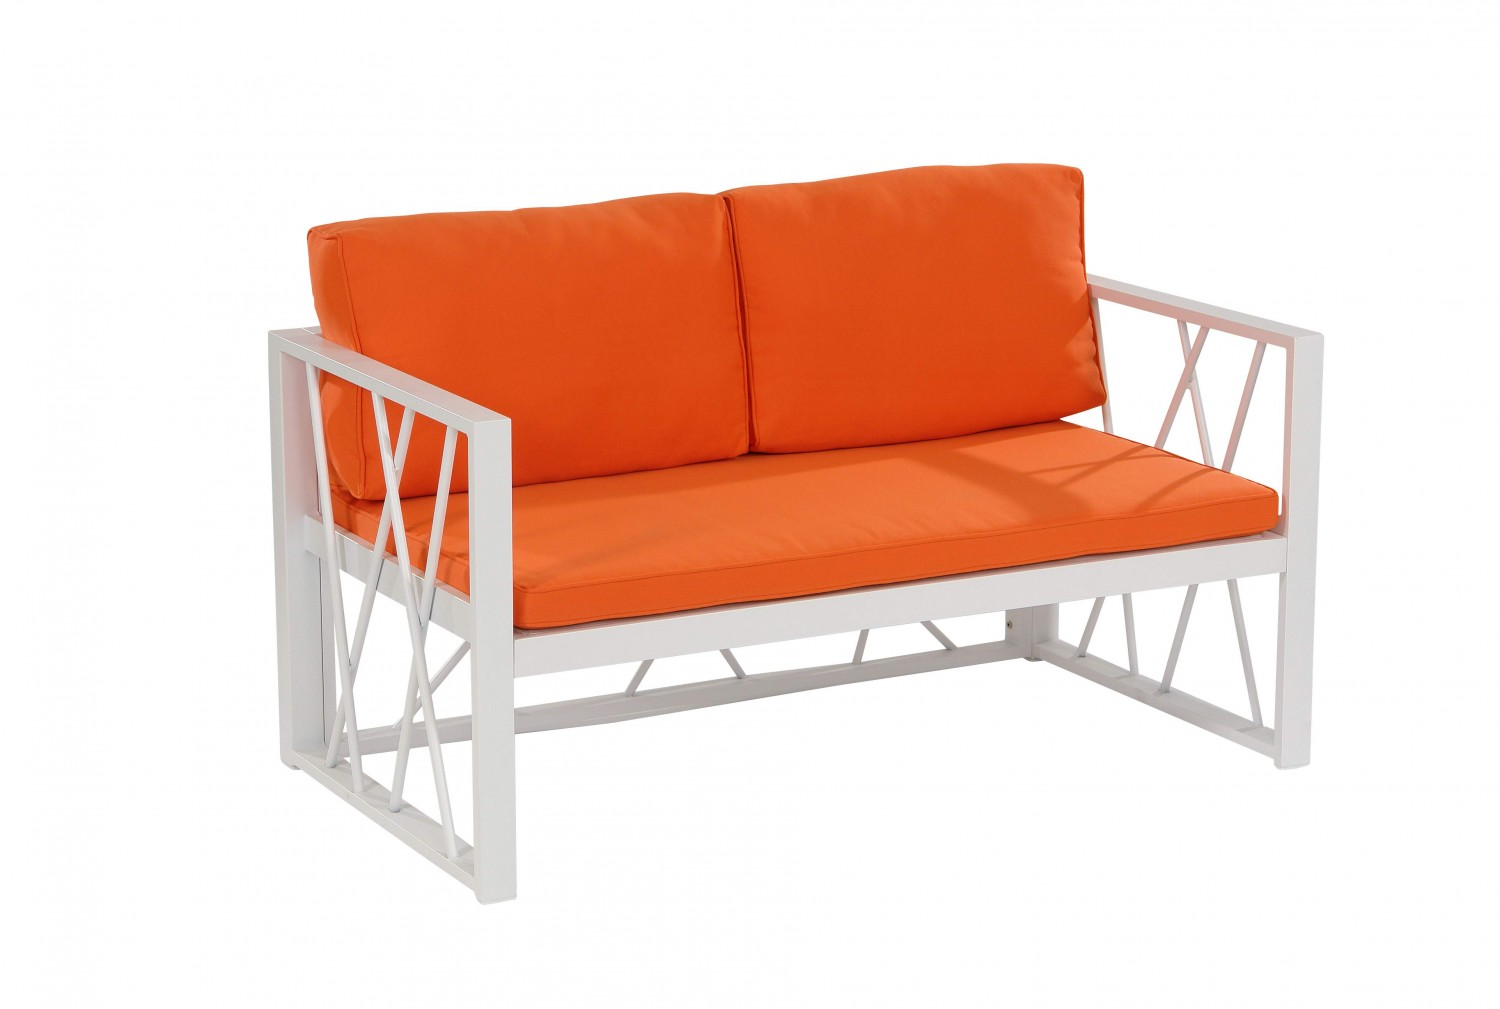 santorin orange aluminium loungegruppe loungegruppen batavia gartenm bel onlineshop f r. Black Bedroom Furniture Sets. Home Design Ideas